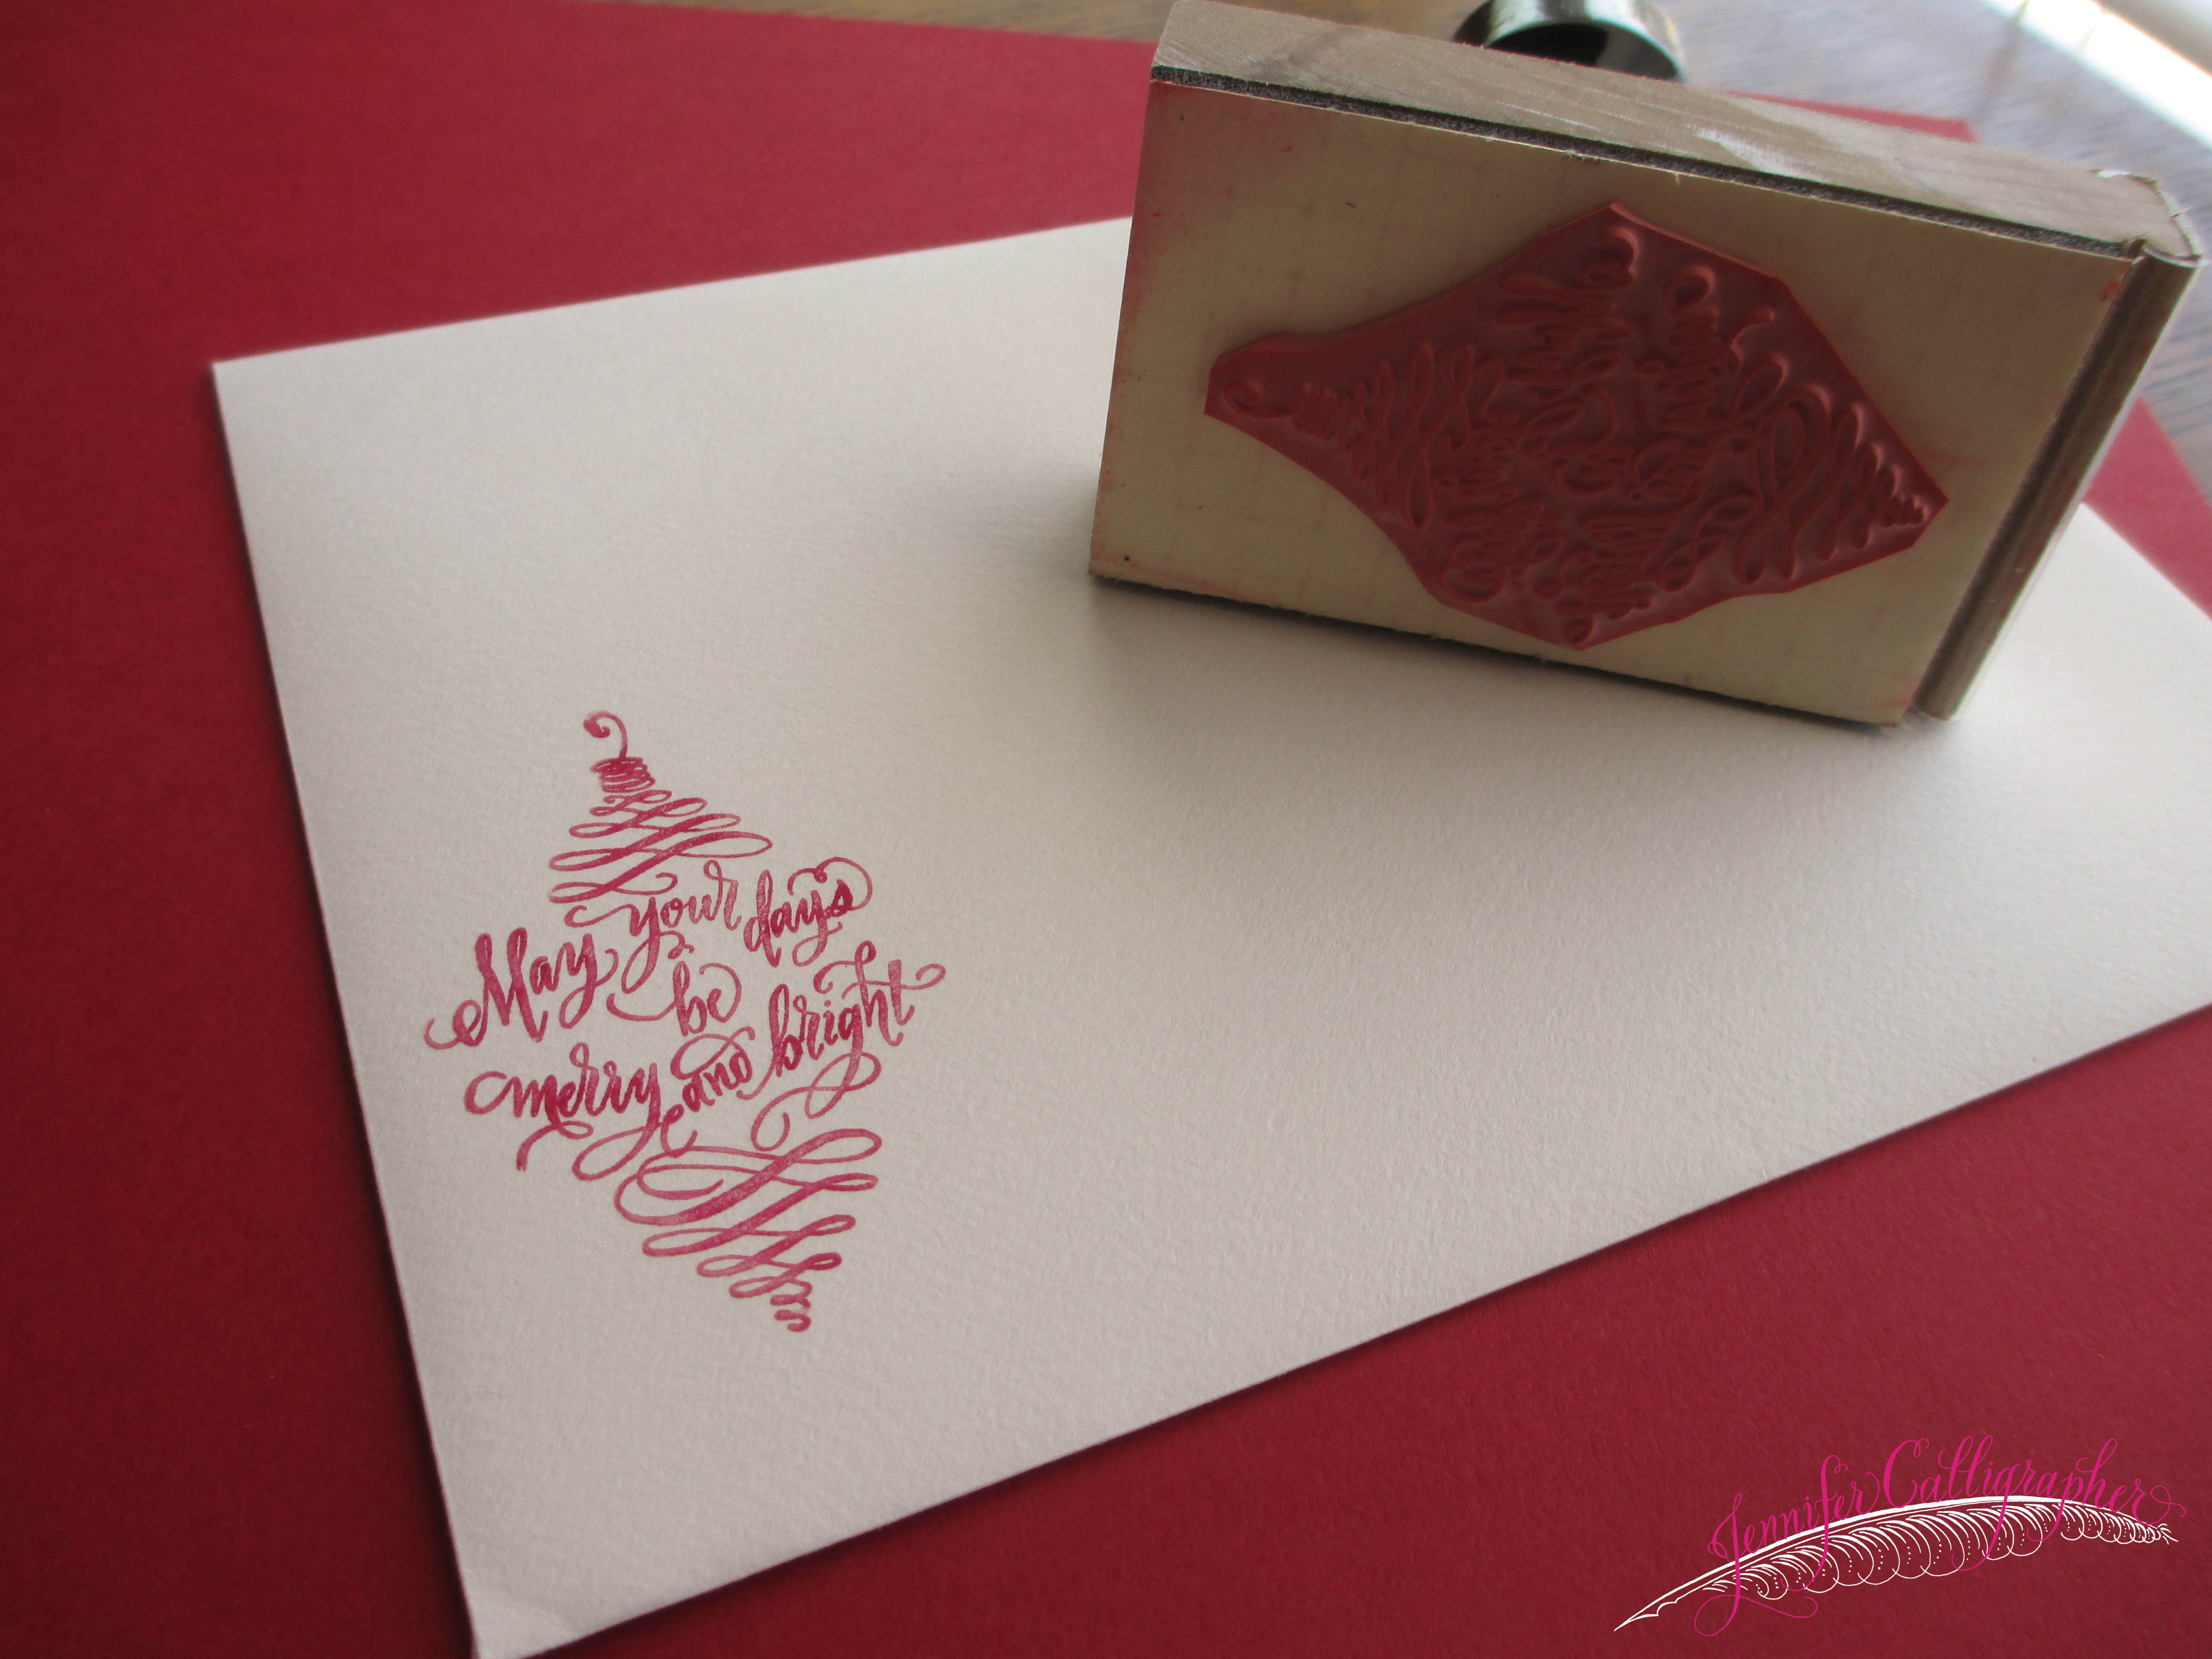 Rubber Stamps in Calligraphy | Jennifer Calligrapher